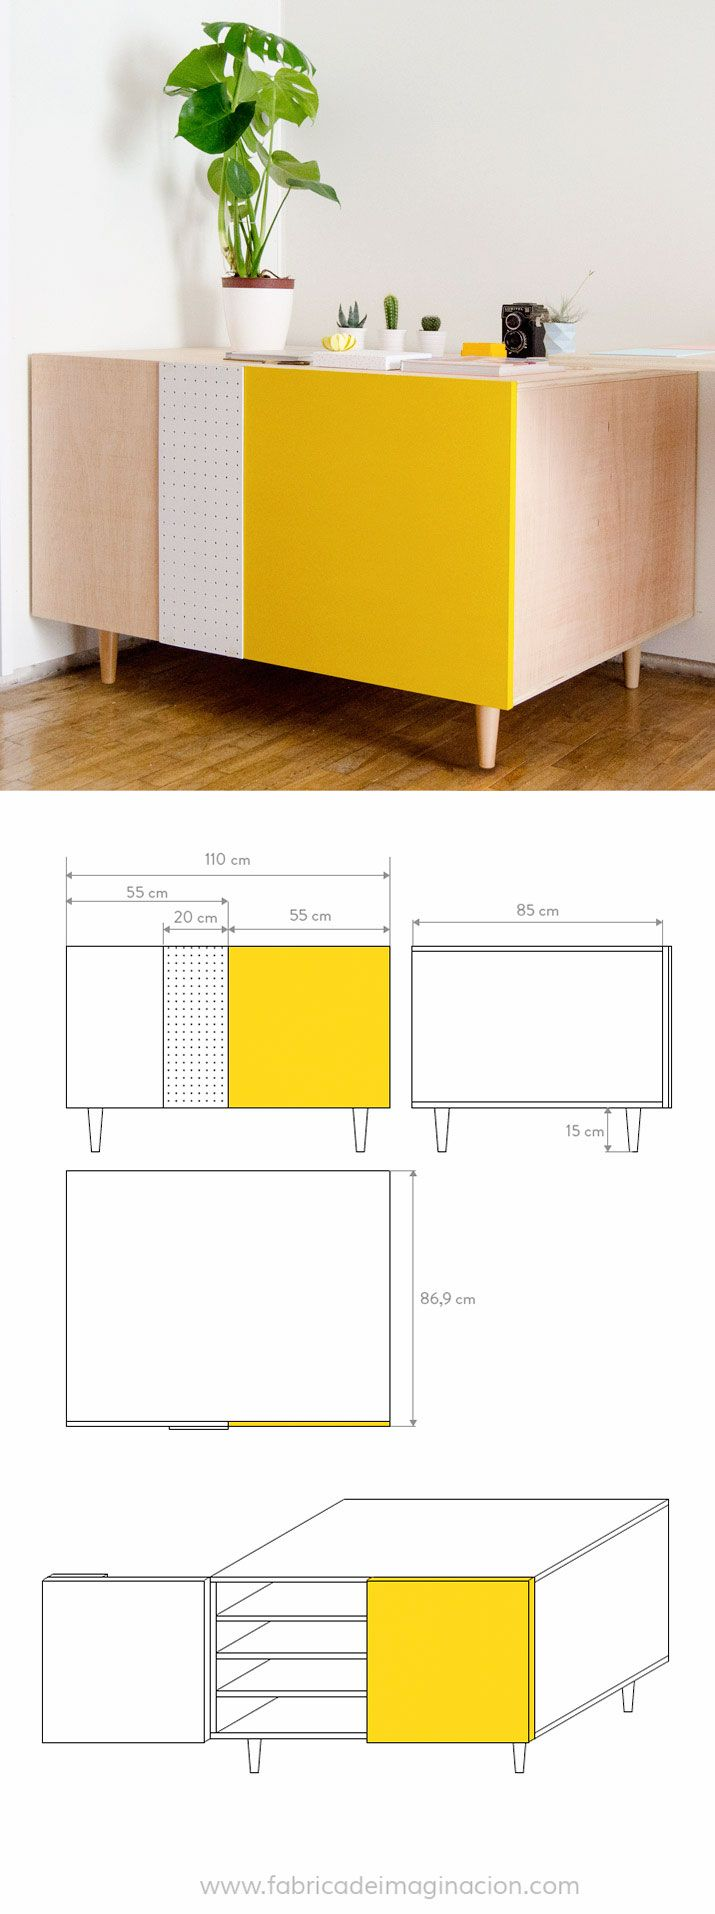 DIY Flat files cabinet · DIY Planera · Fábrica de Imaginación · Steps in Spanish